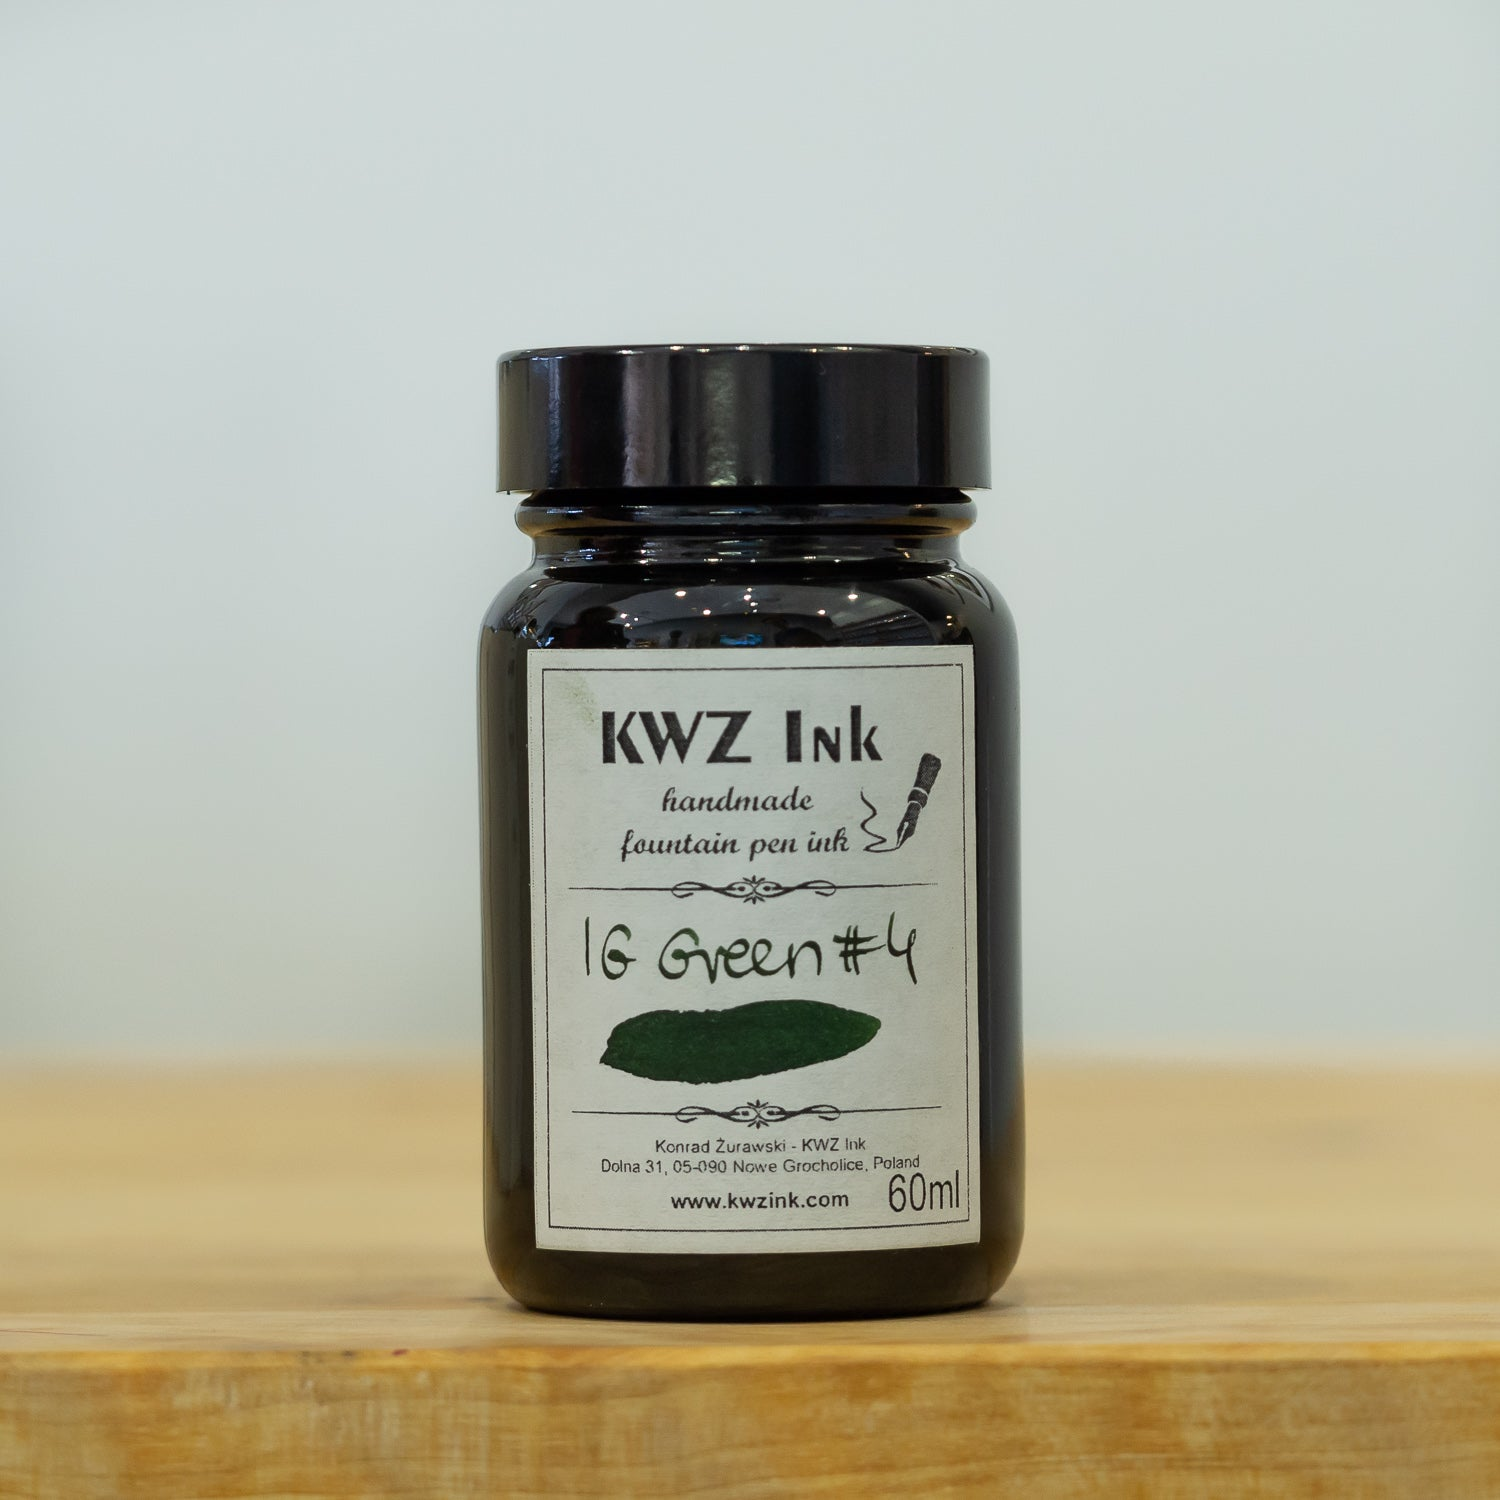 kwz iron gall ink green #4